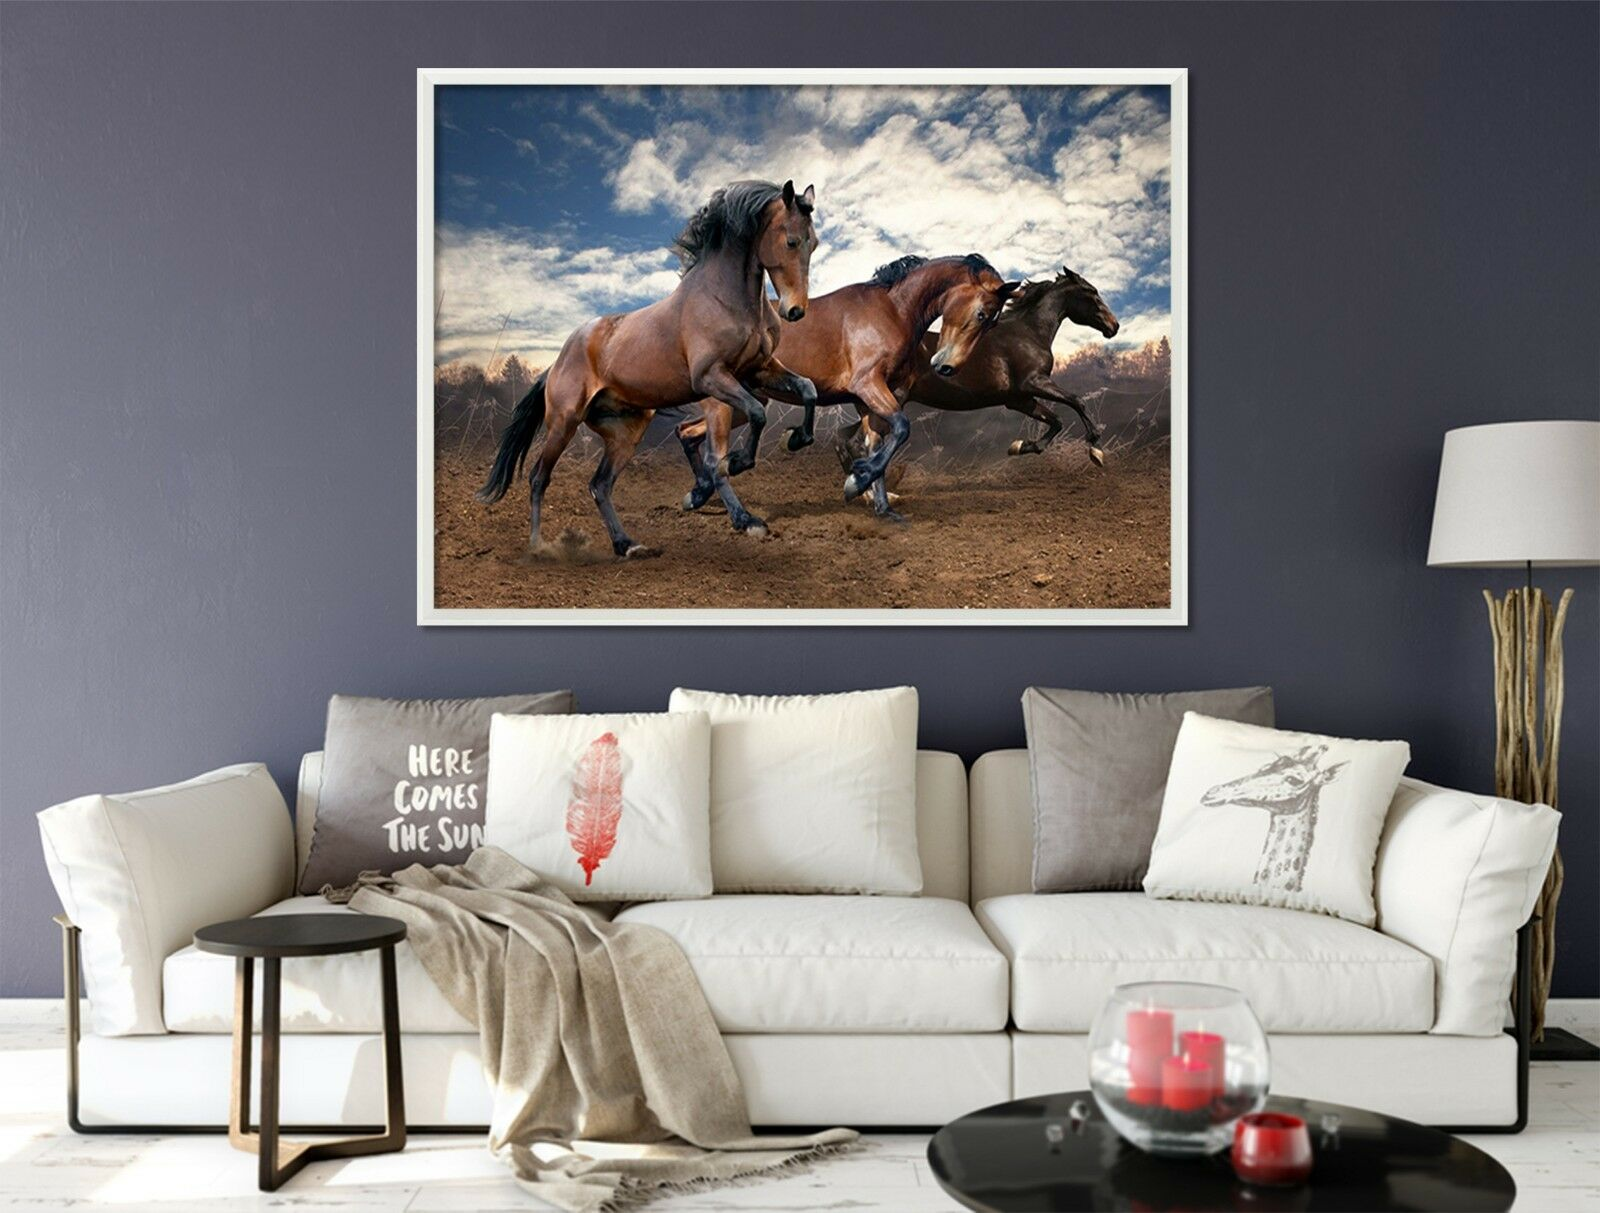 3D Sky Horse 664 Fake Framed Poster Home Decor Print Painting Unique Art Summer